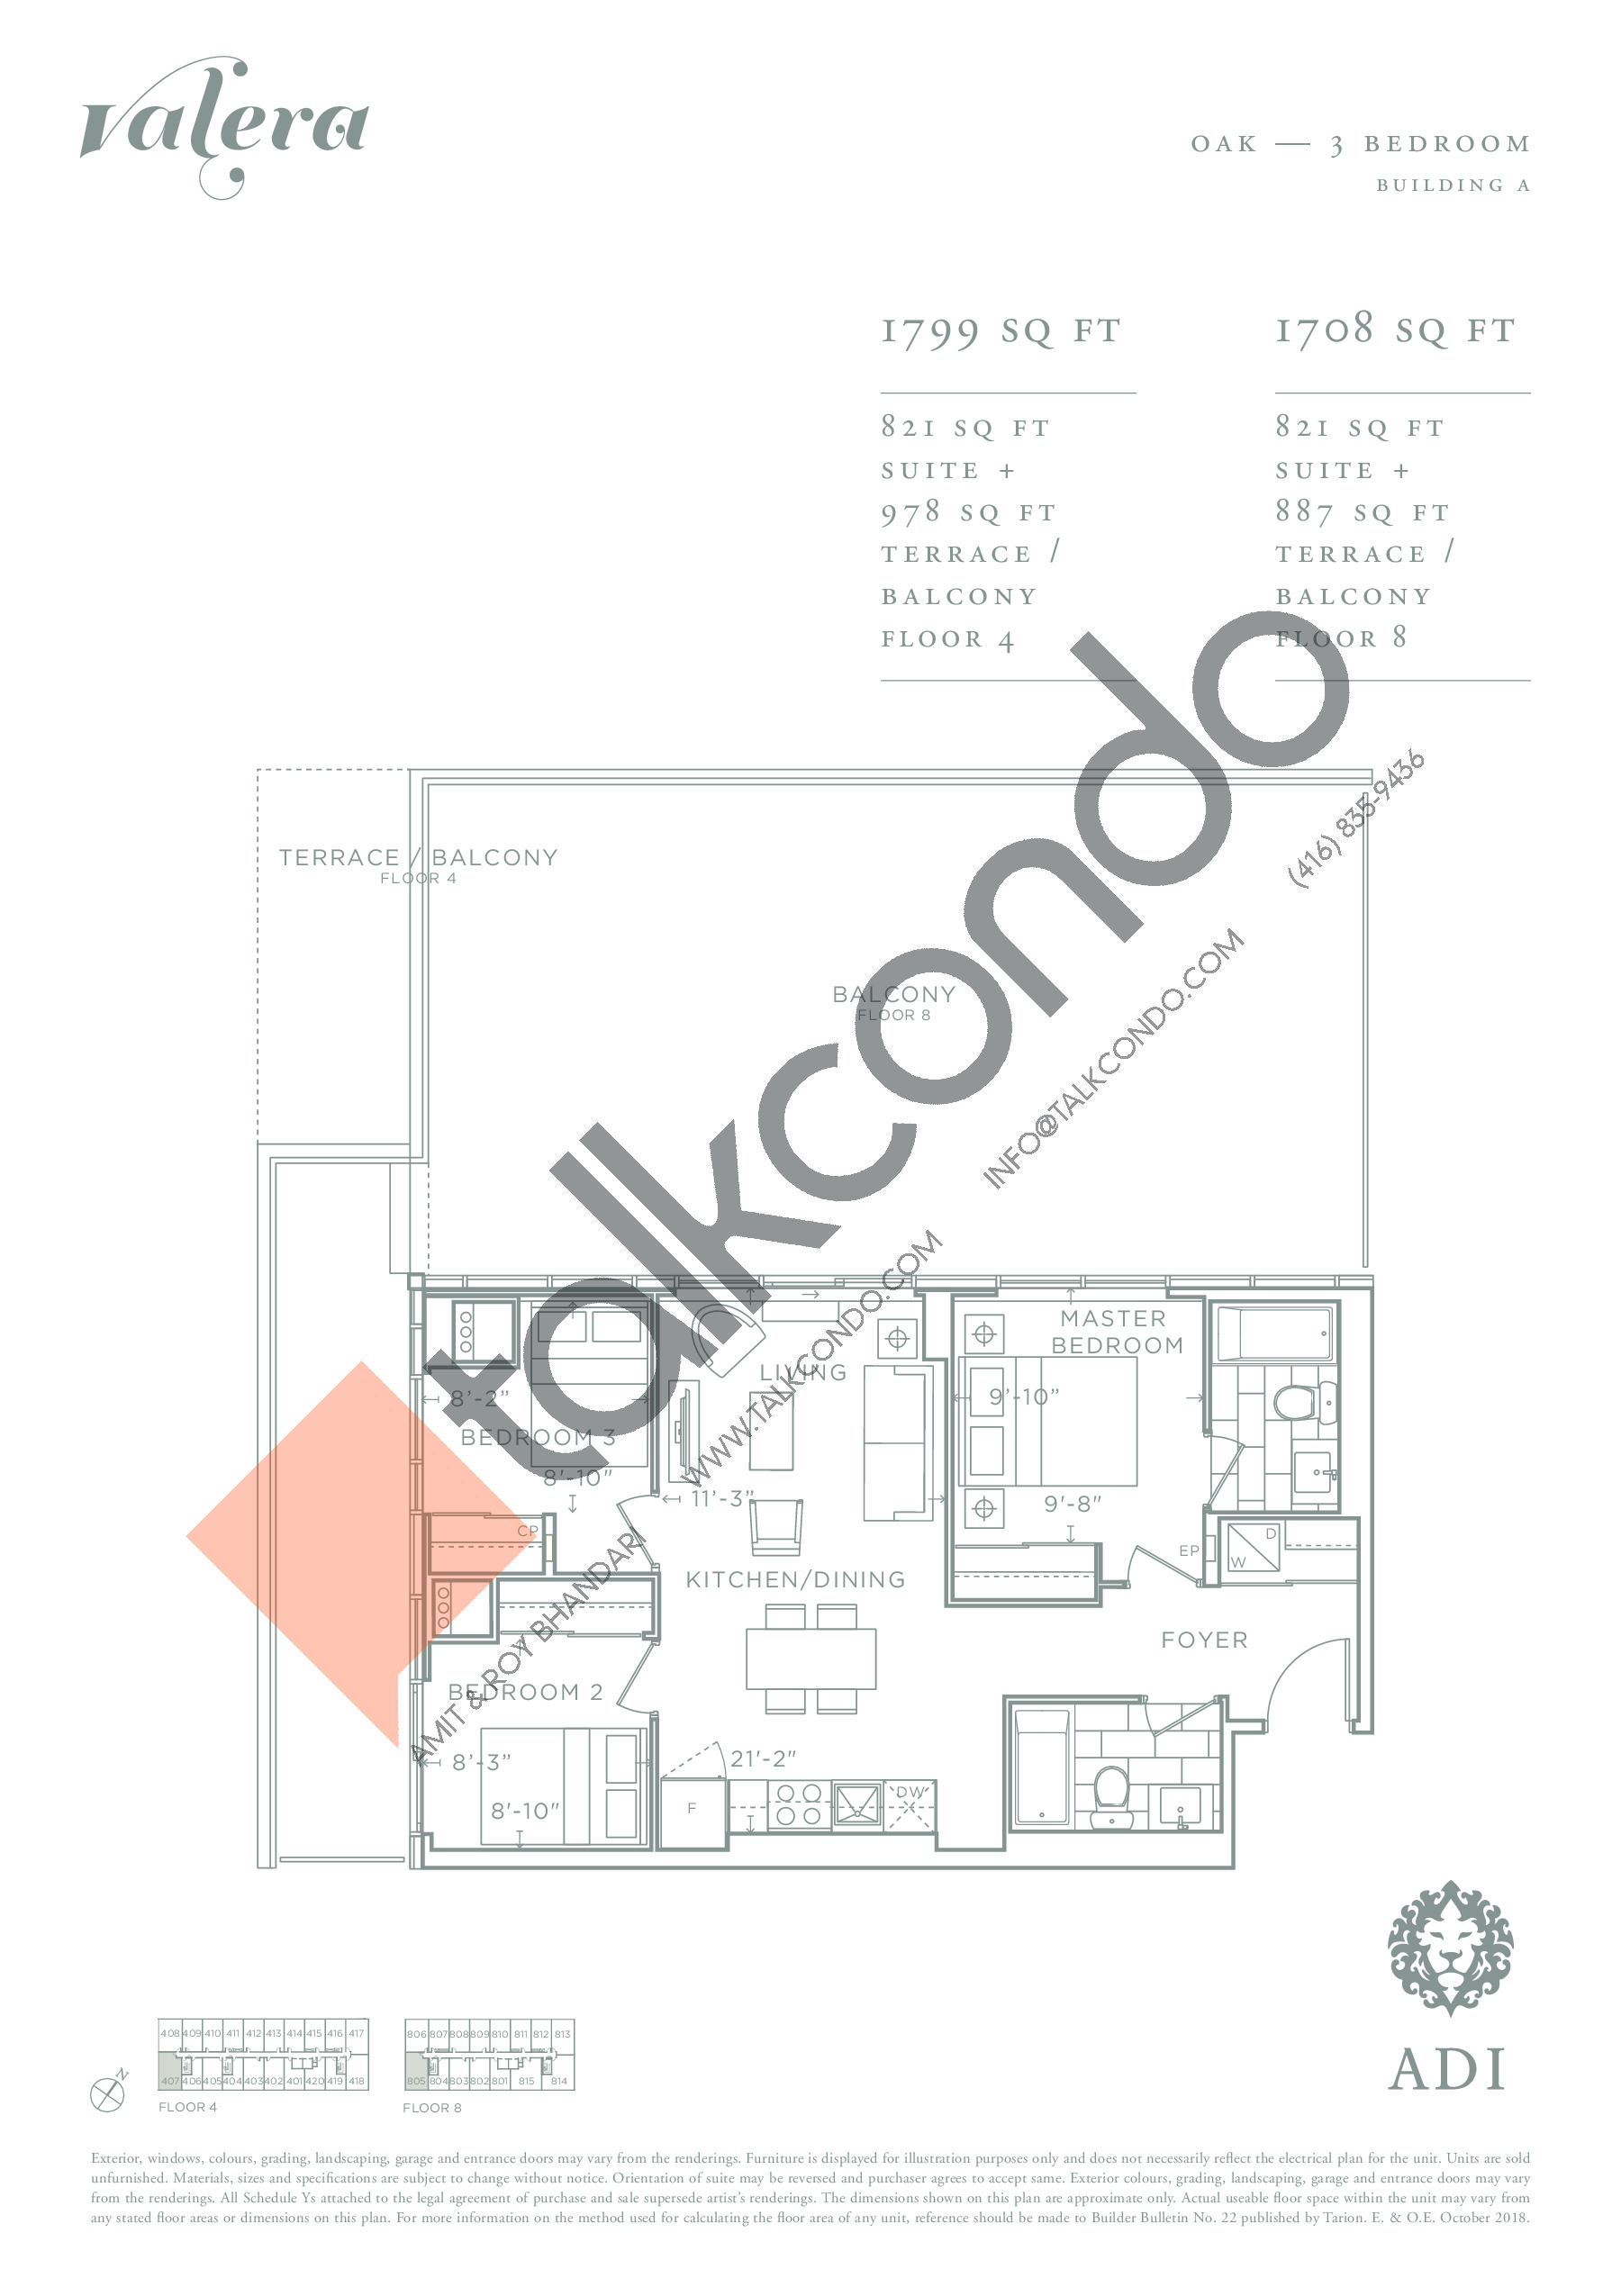 Oak Floor Plan at Valera Condos - 821 sq.ft